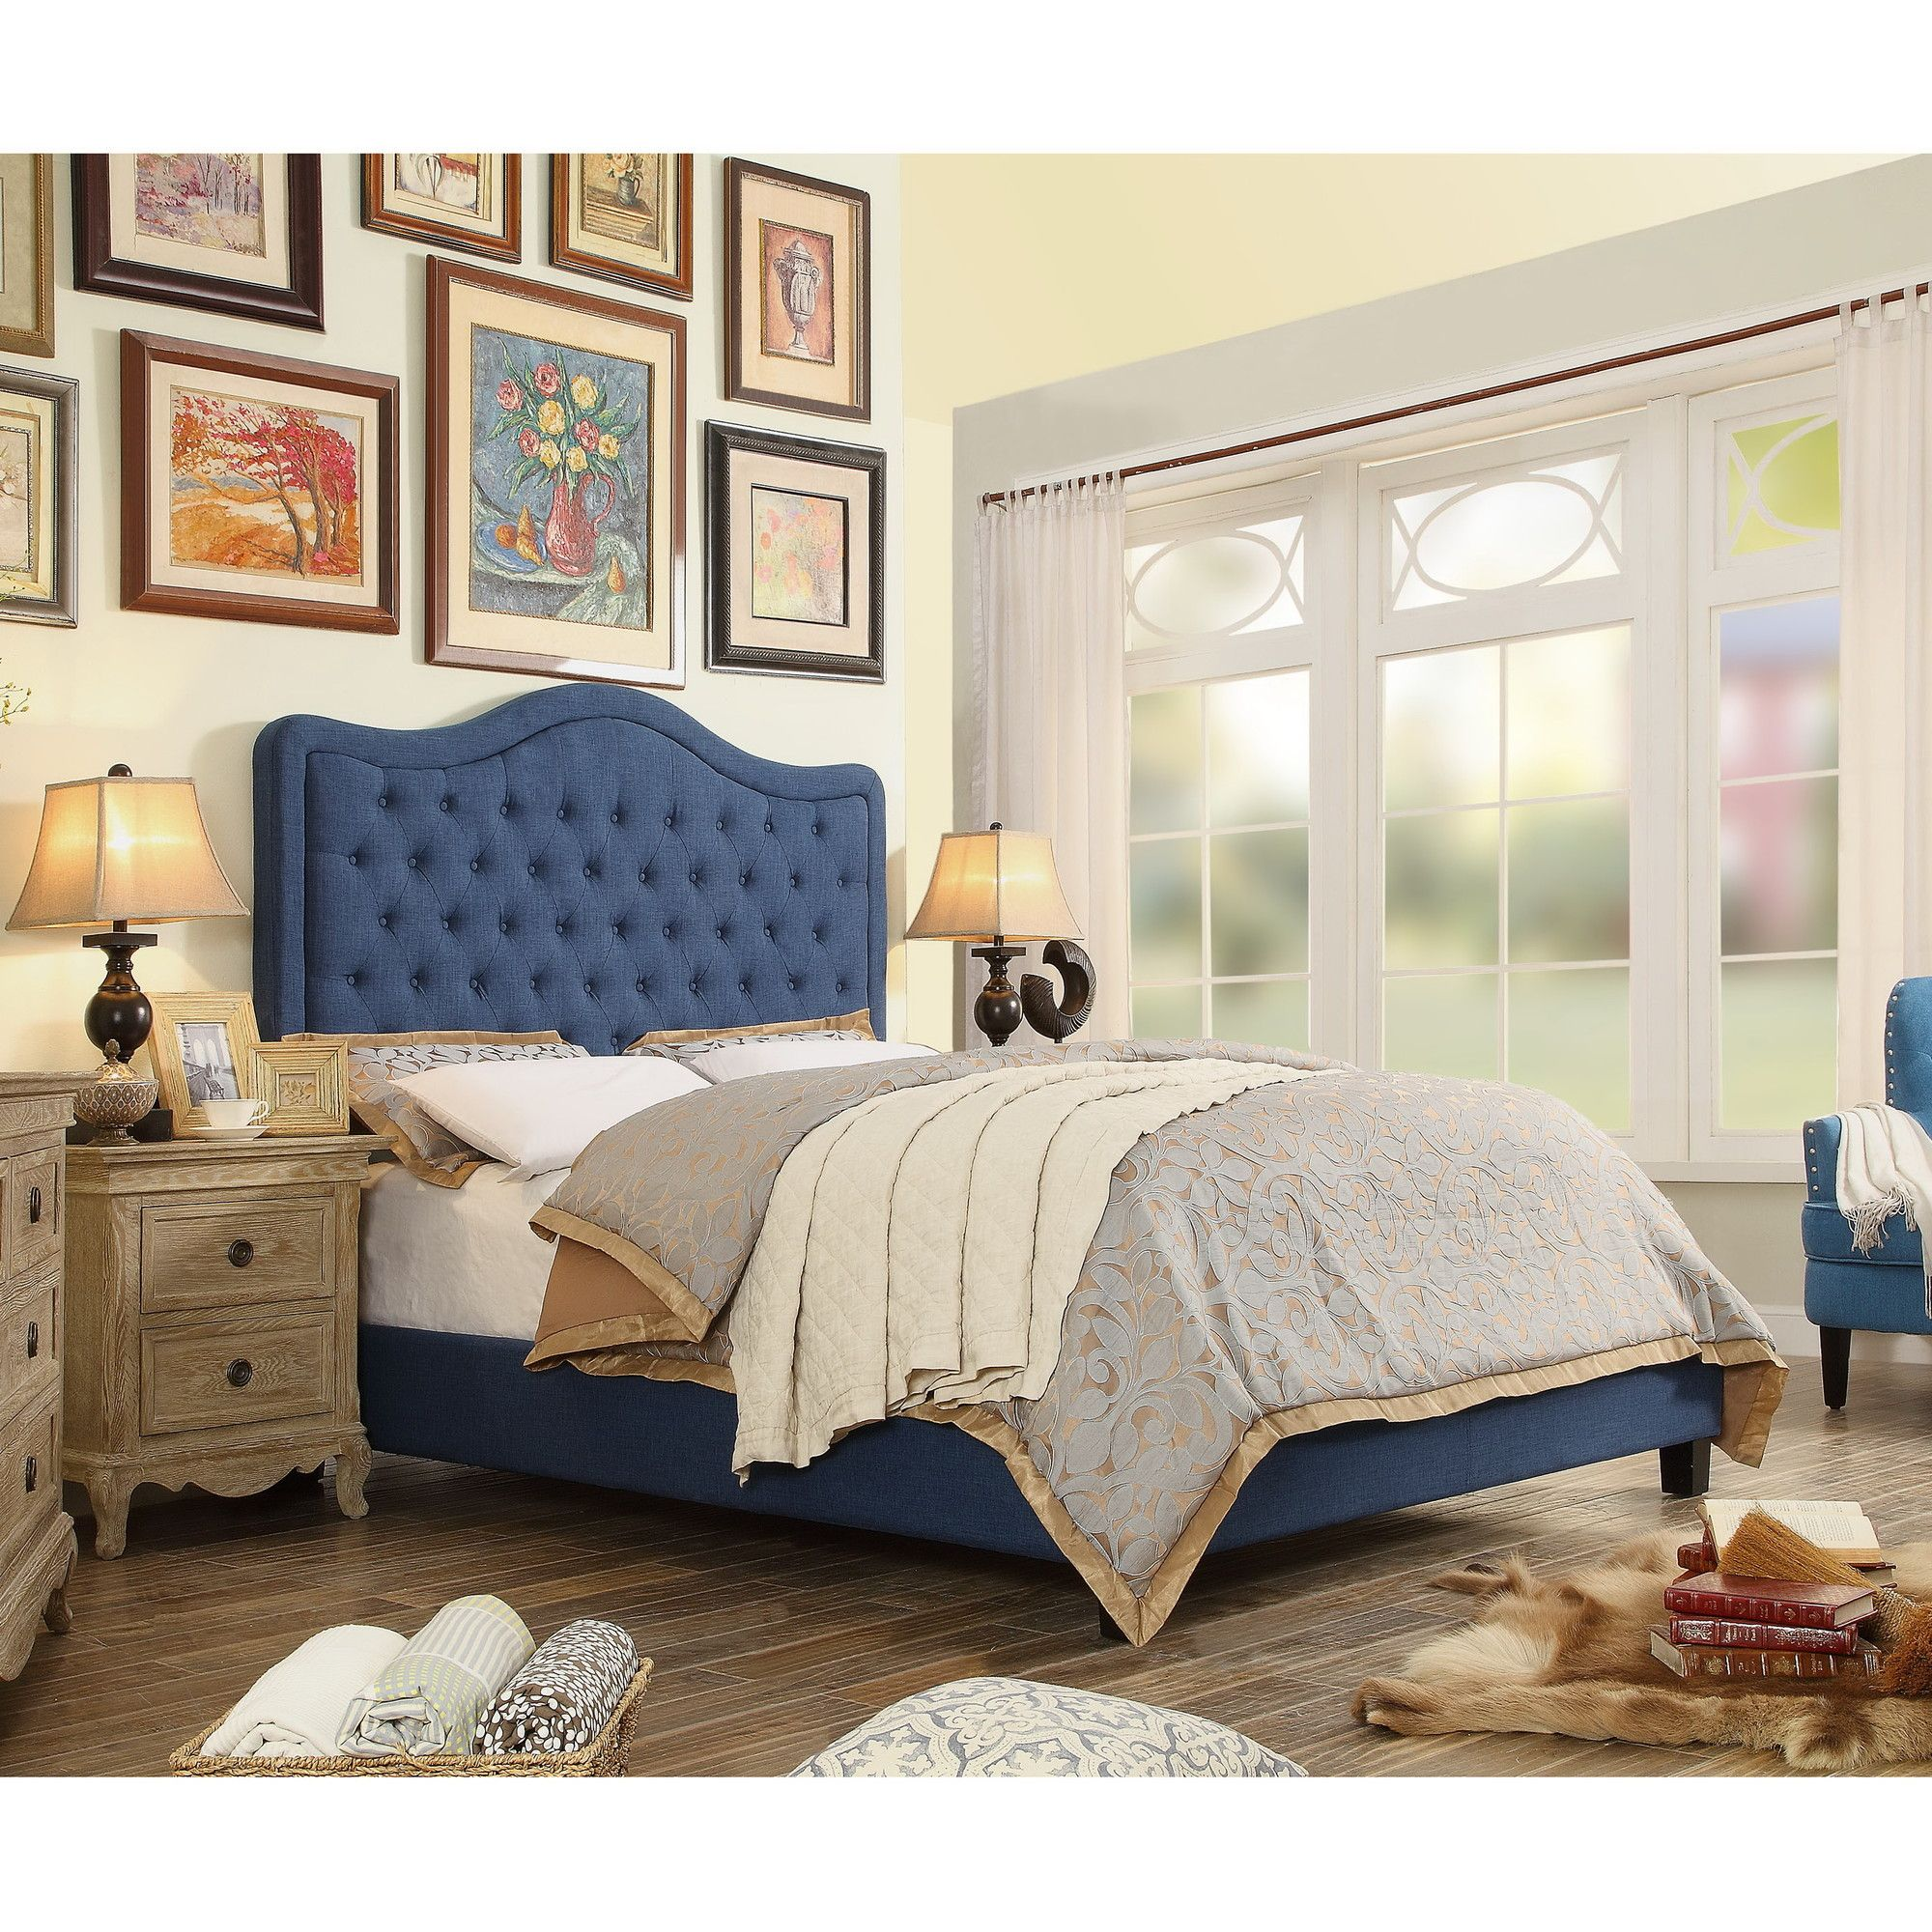 This upholstered panel bed collection is decorative with